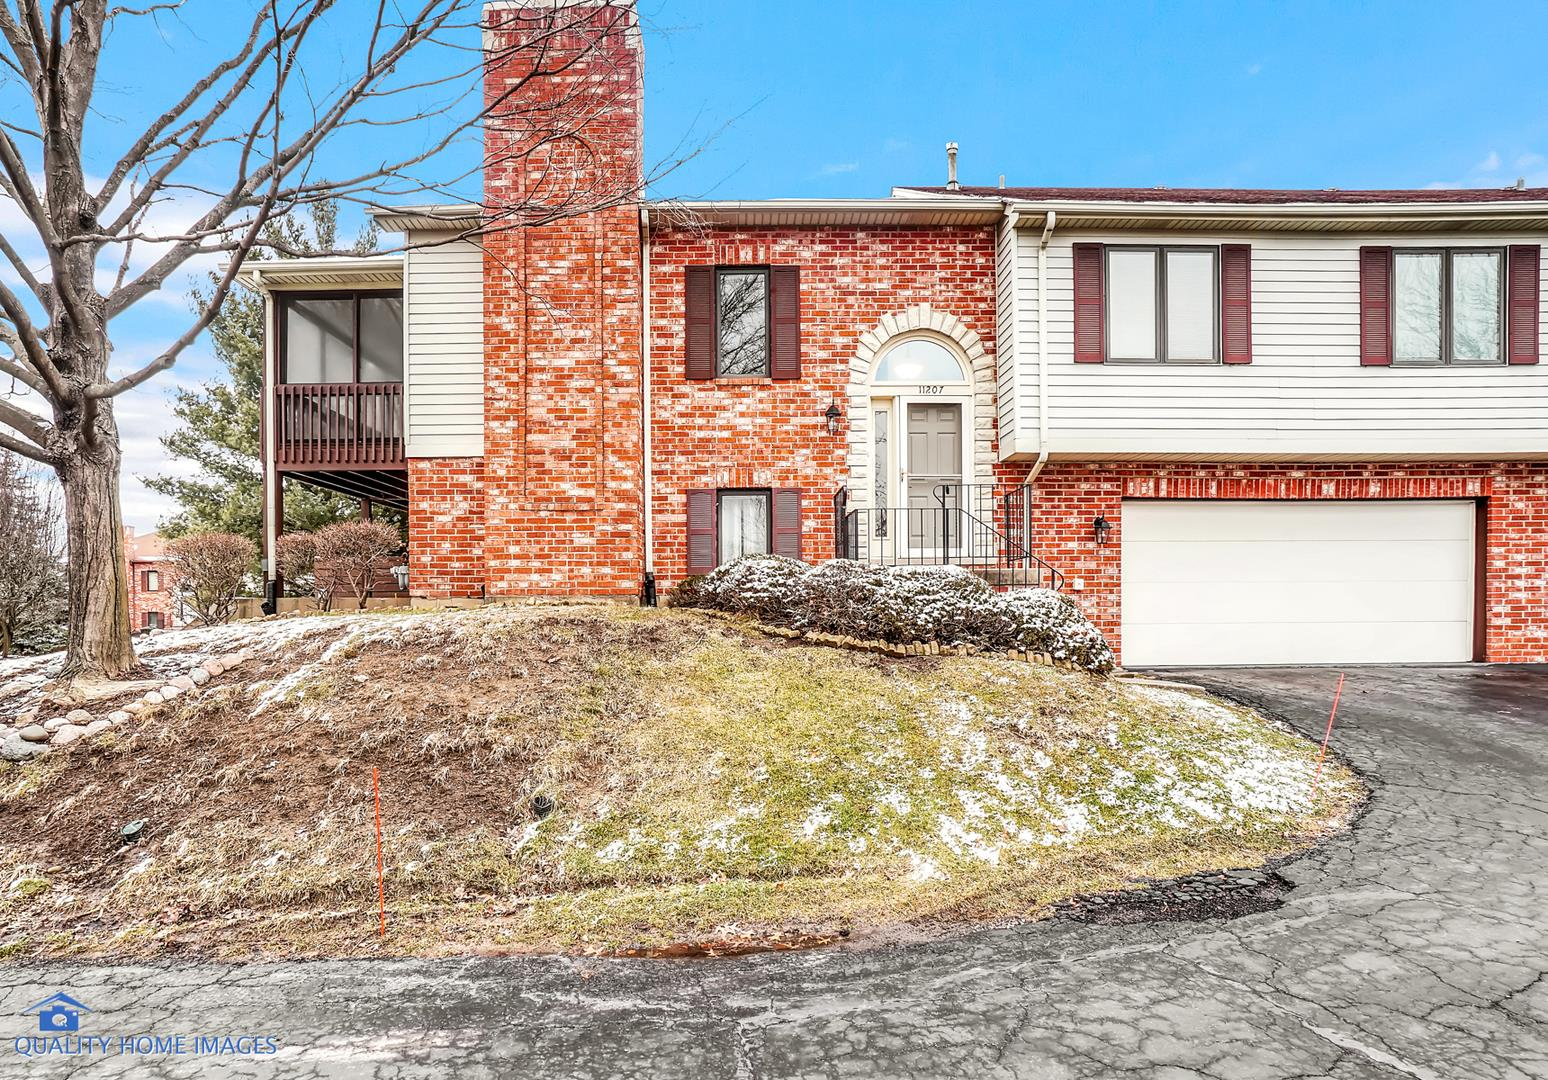 11207 Cameron Parkway, Orland Park, IL 60467 - #: 10614142